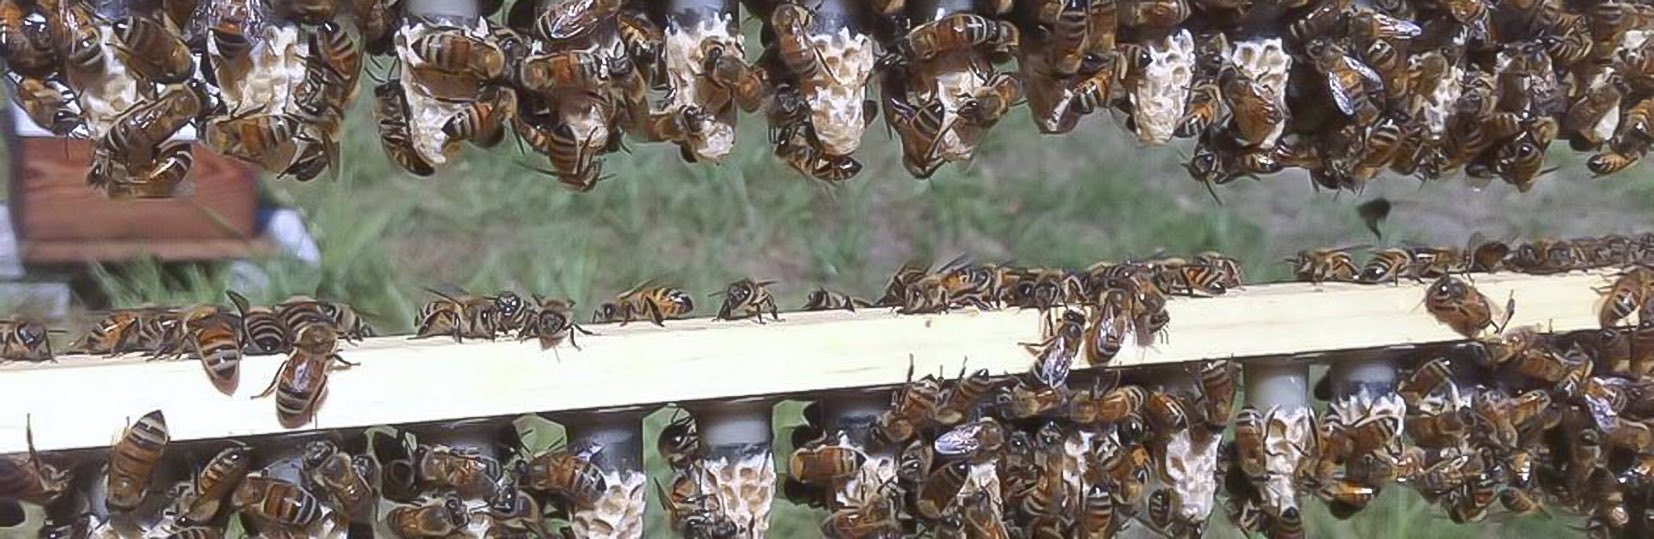 A passionate treatment free beekeeper